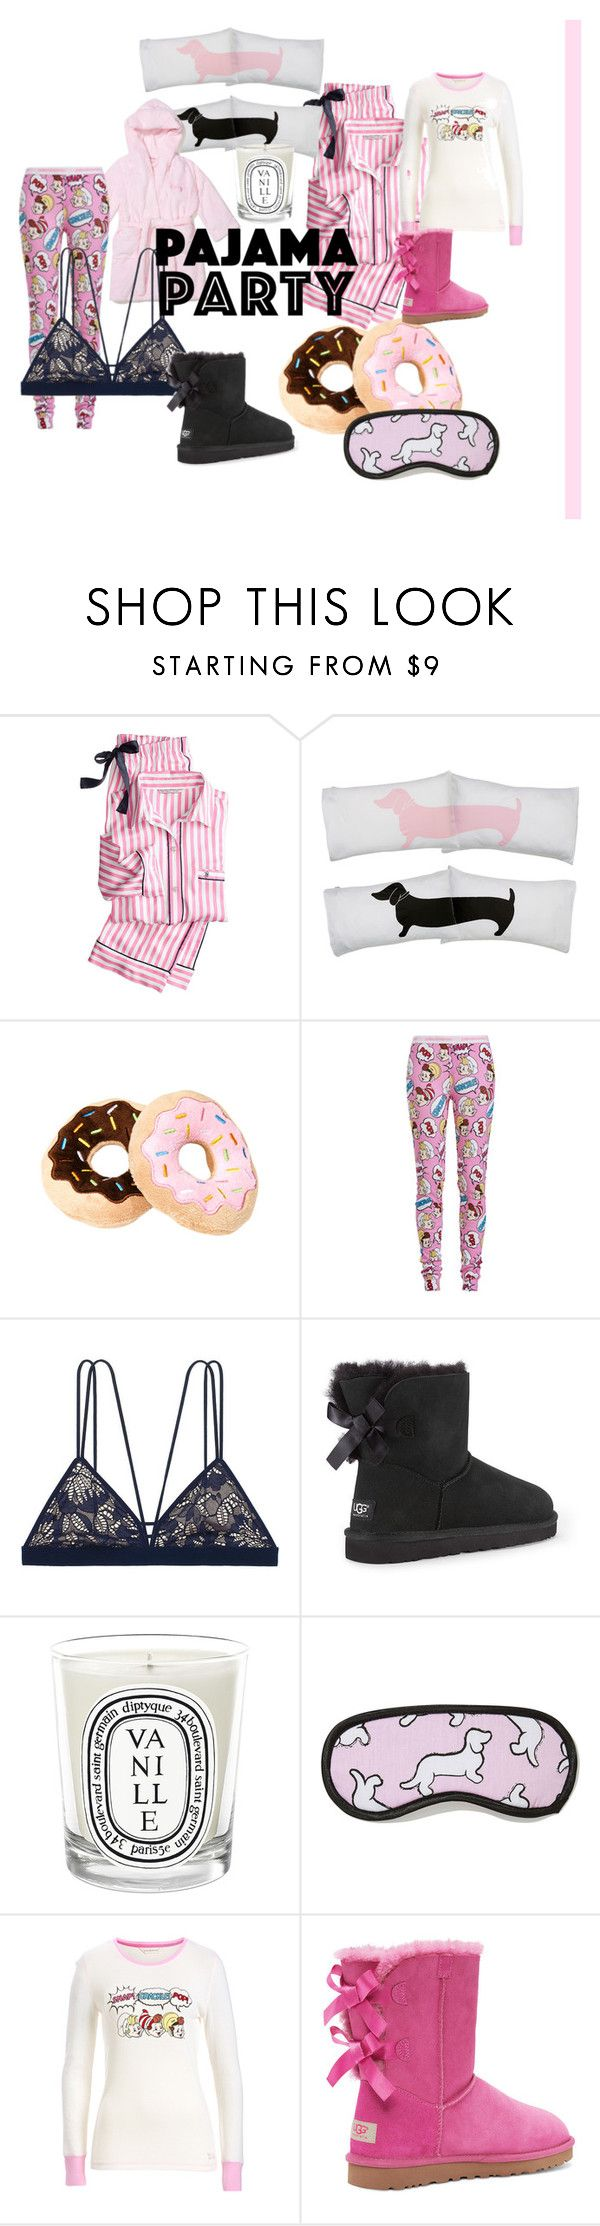 """""""Pajama Party"""" by eviejessup on Polyvore featuring Victoria's Secret, UGG Australia and Diptyque"""